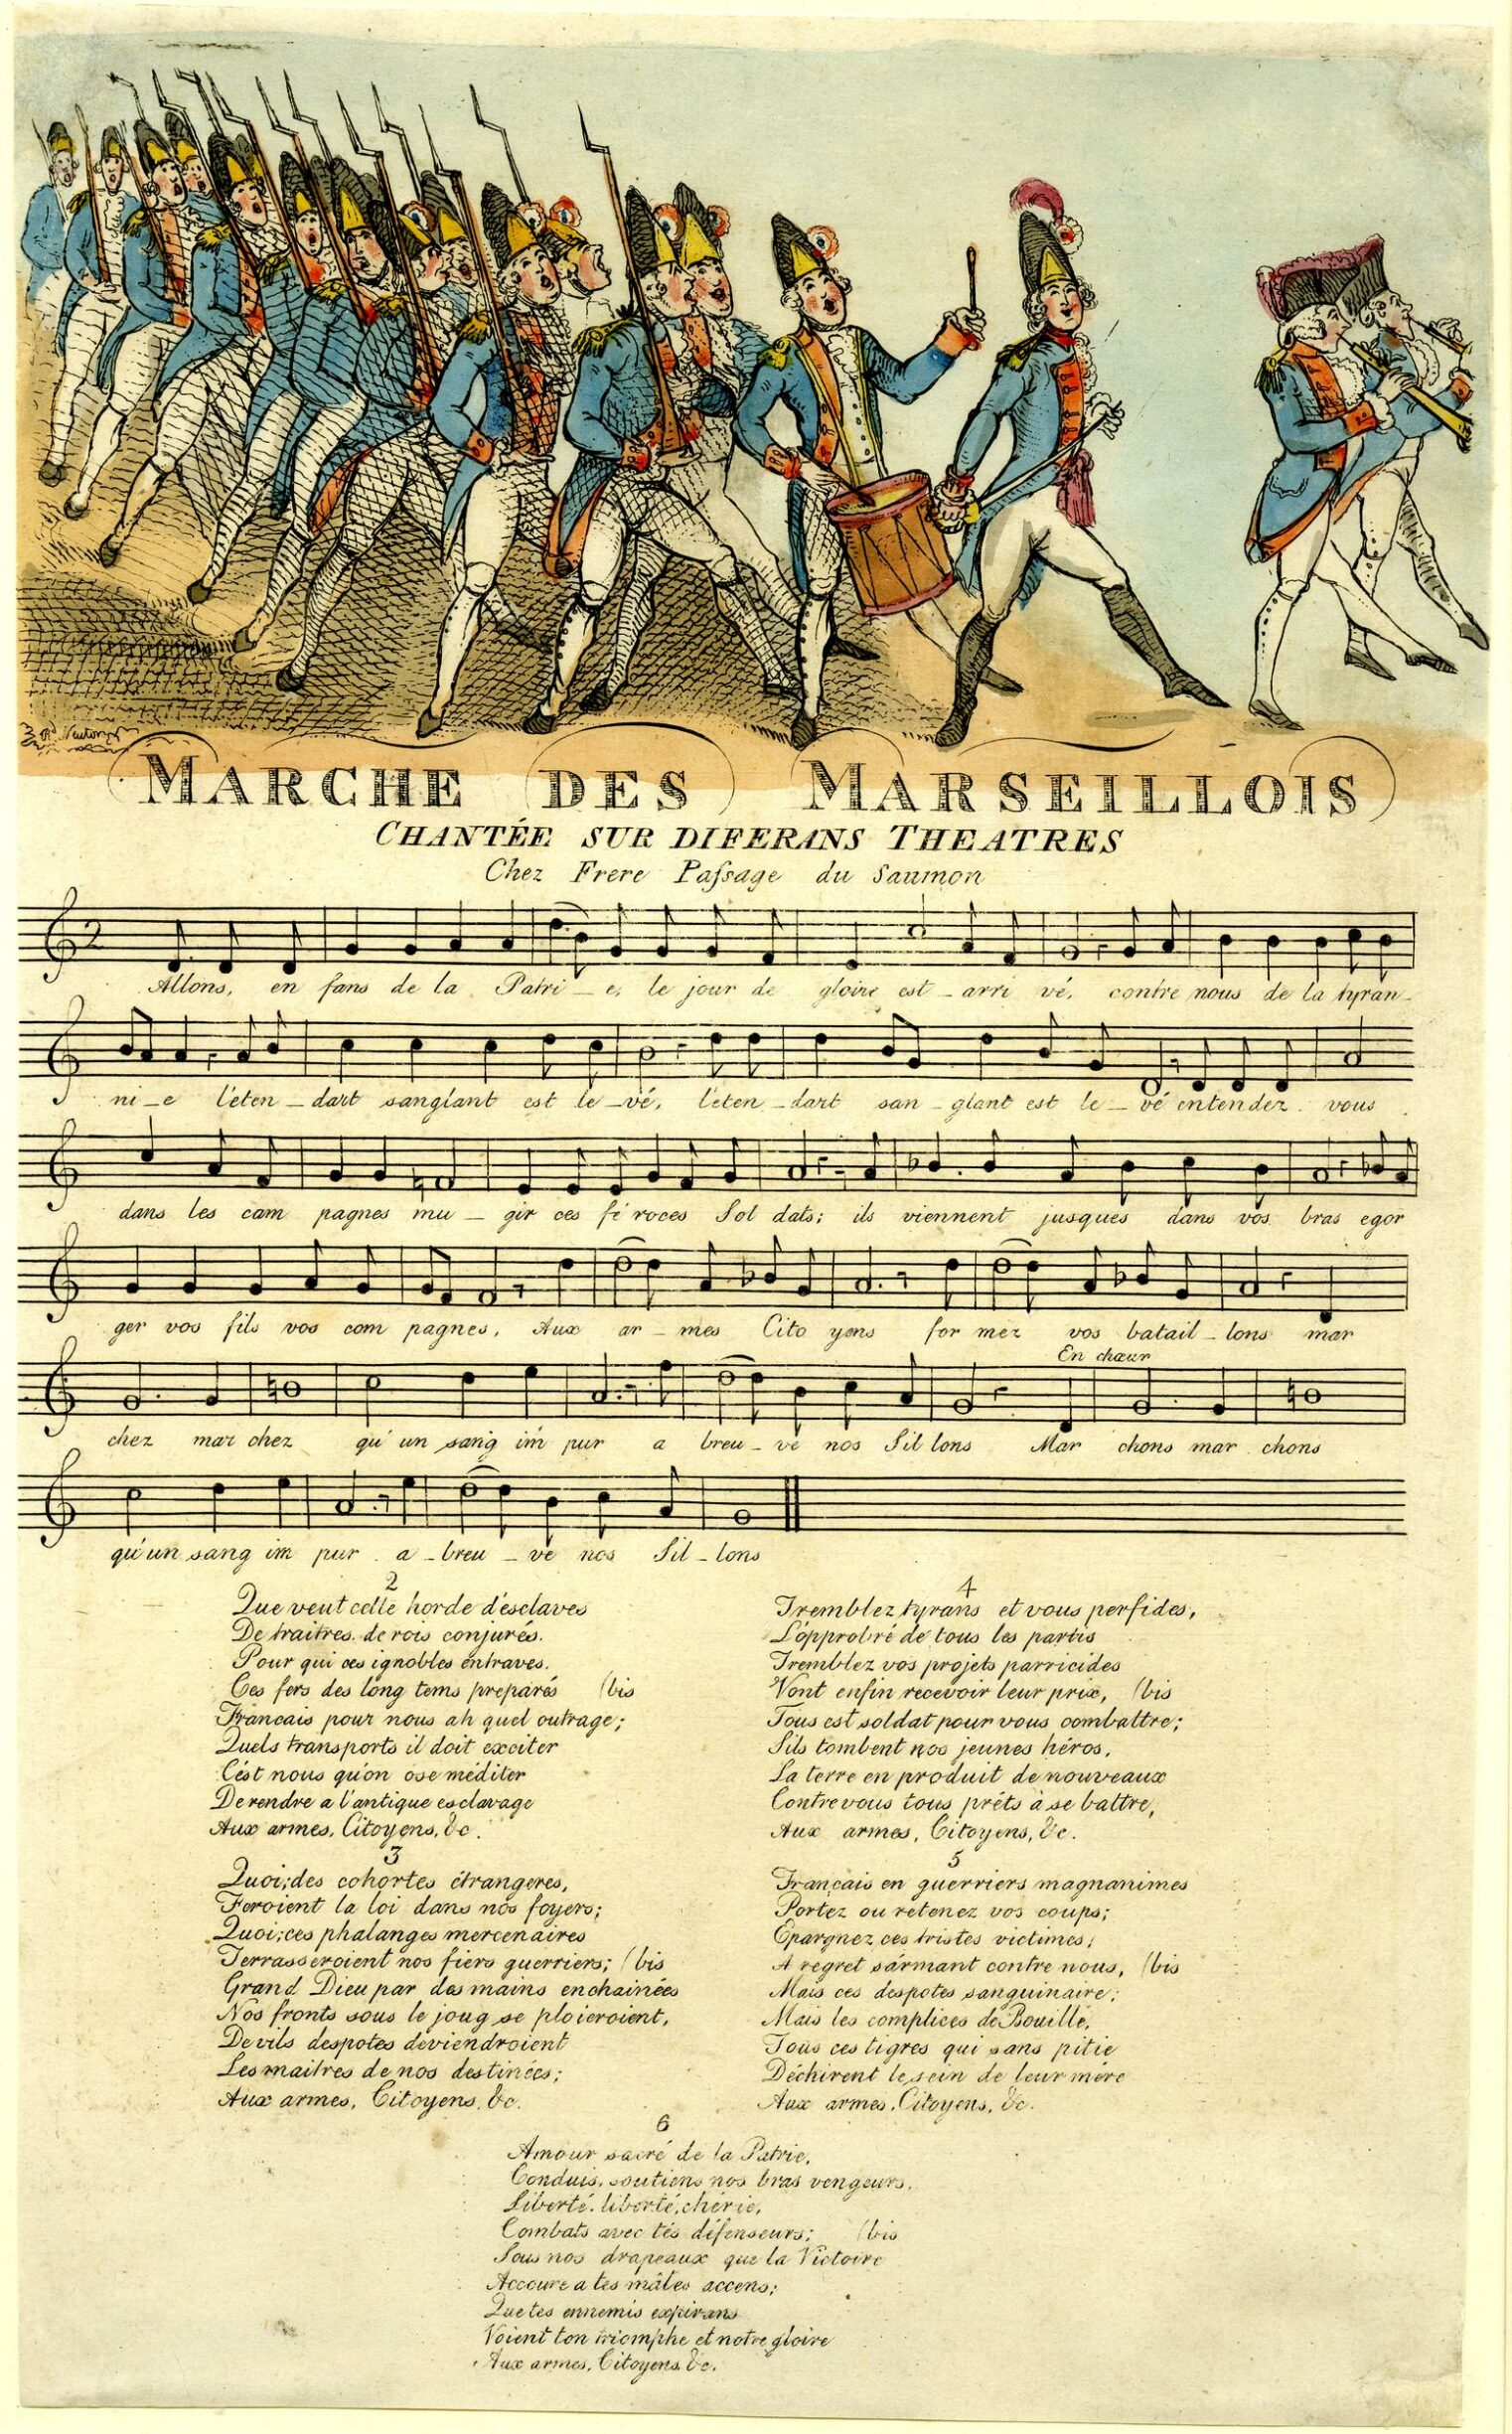 Marche des Marseillois. Revolutionary satire: song sheet recording the 'Marseillaise', under French soldiers marching and singing; version of French print. 10 November 1792. Hand-coloured etching by Richard Newton. Collection: Museum Britànica. Public Domain.